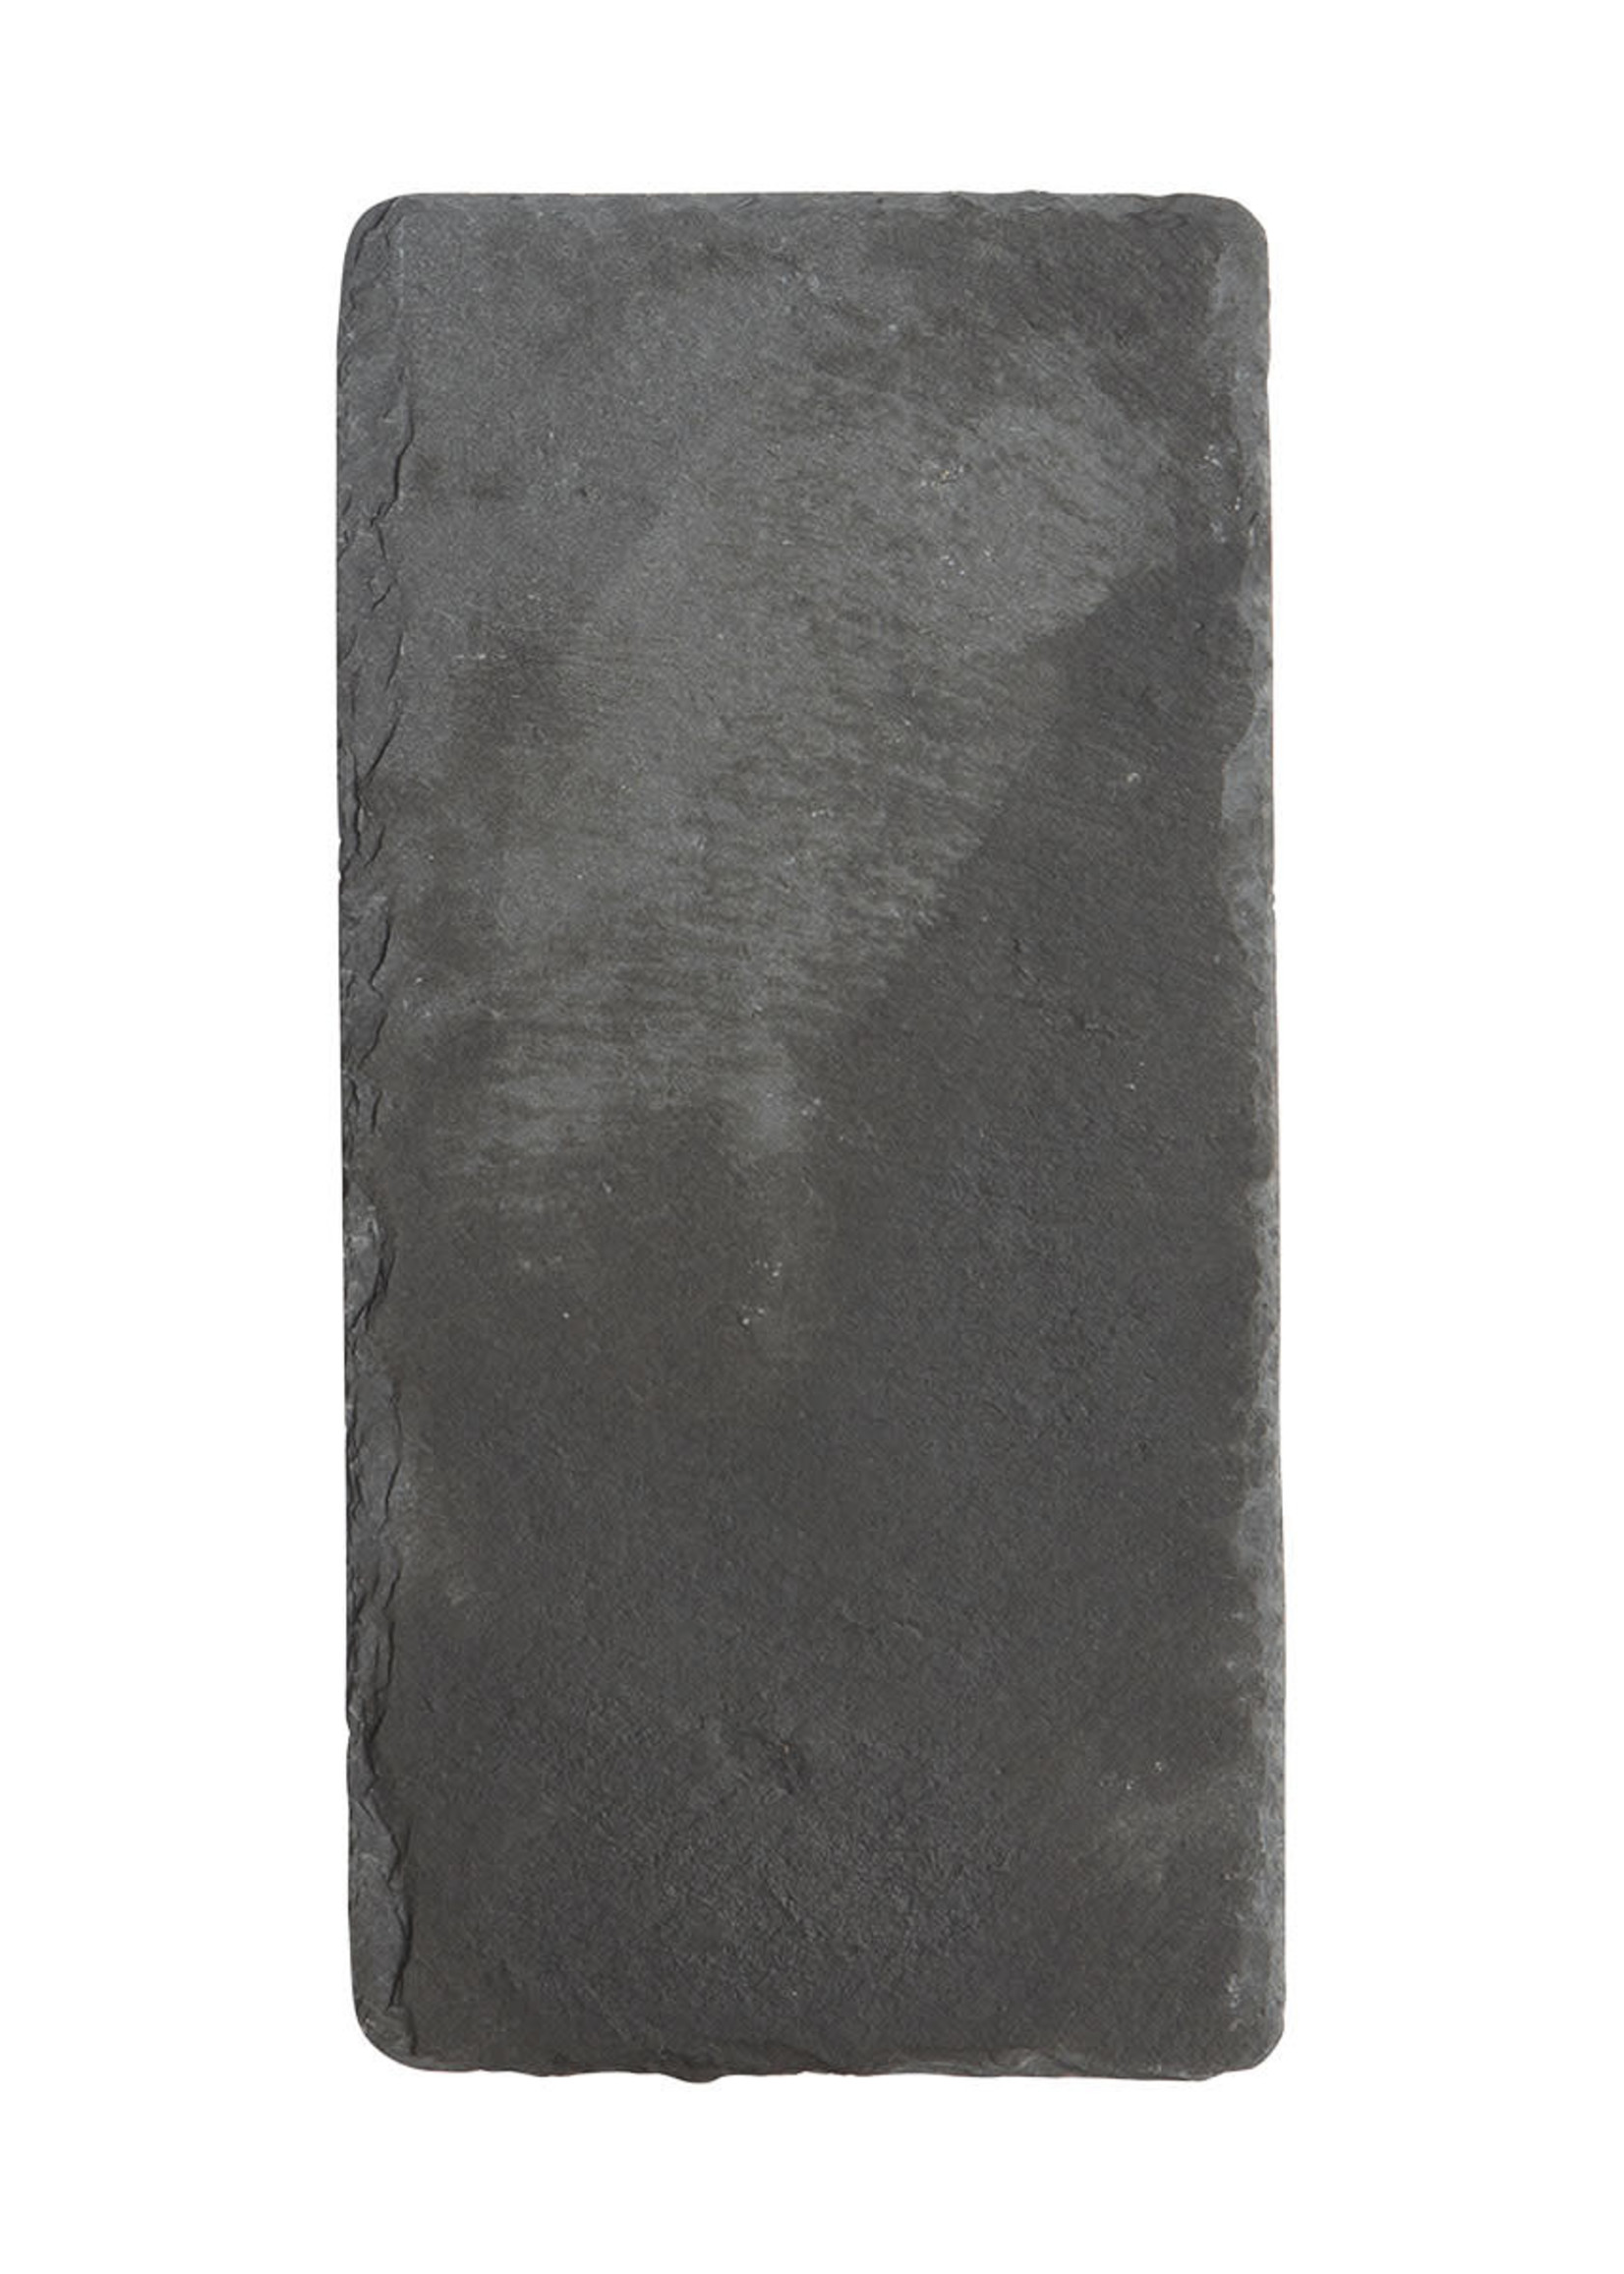 SOCIETY OF LIFESTYLE SOL SLATE PLATE 30X10CM